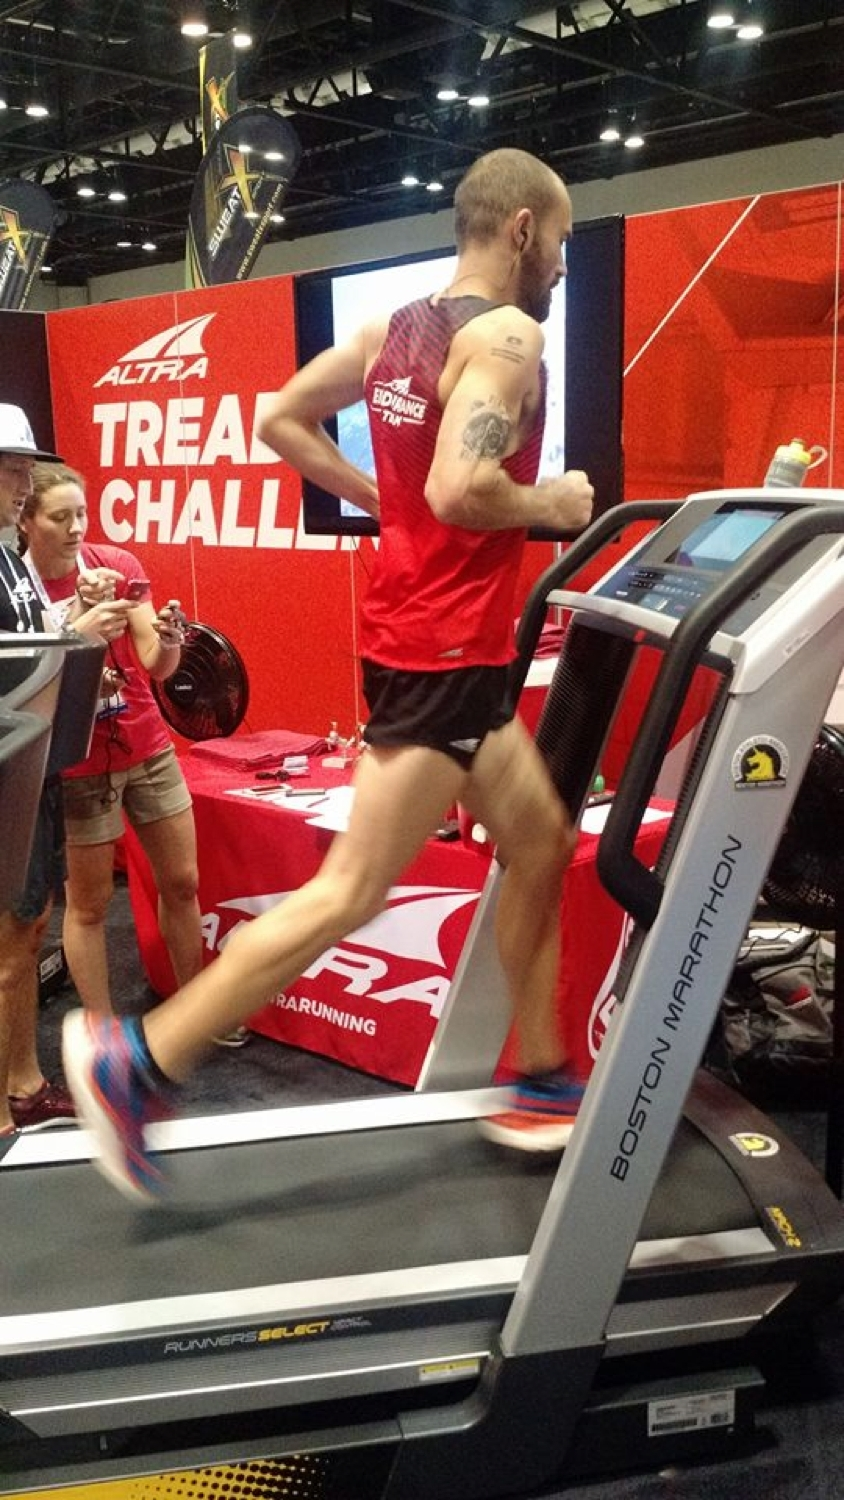 Altra Elite Athlete Jacob Puzey set the new world record for fastest 50-miler on a treadmill with a time of 4:57:45. Puzey is an accomplished ultrarunner who ran the entire 50 miles on a ProForm Boston Marathon Treadmill at The Running Event trade show in Orlando. (Photo: Altra)